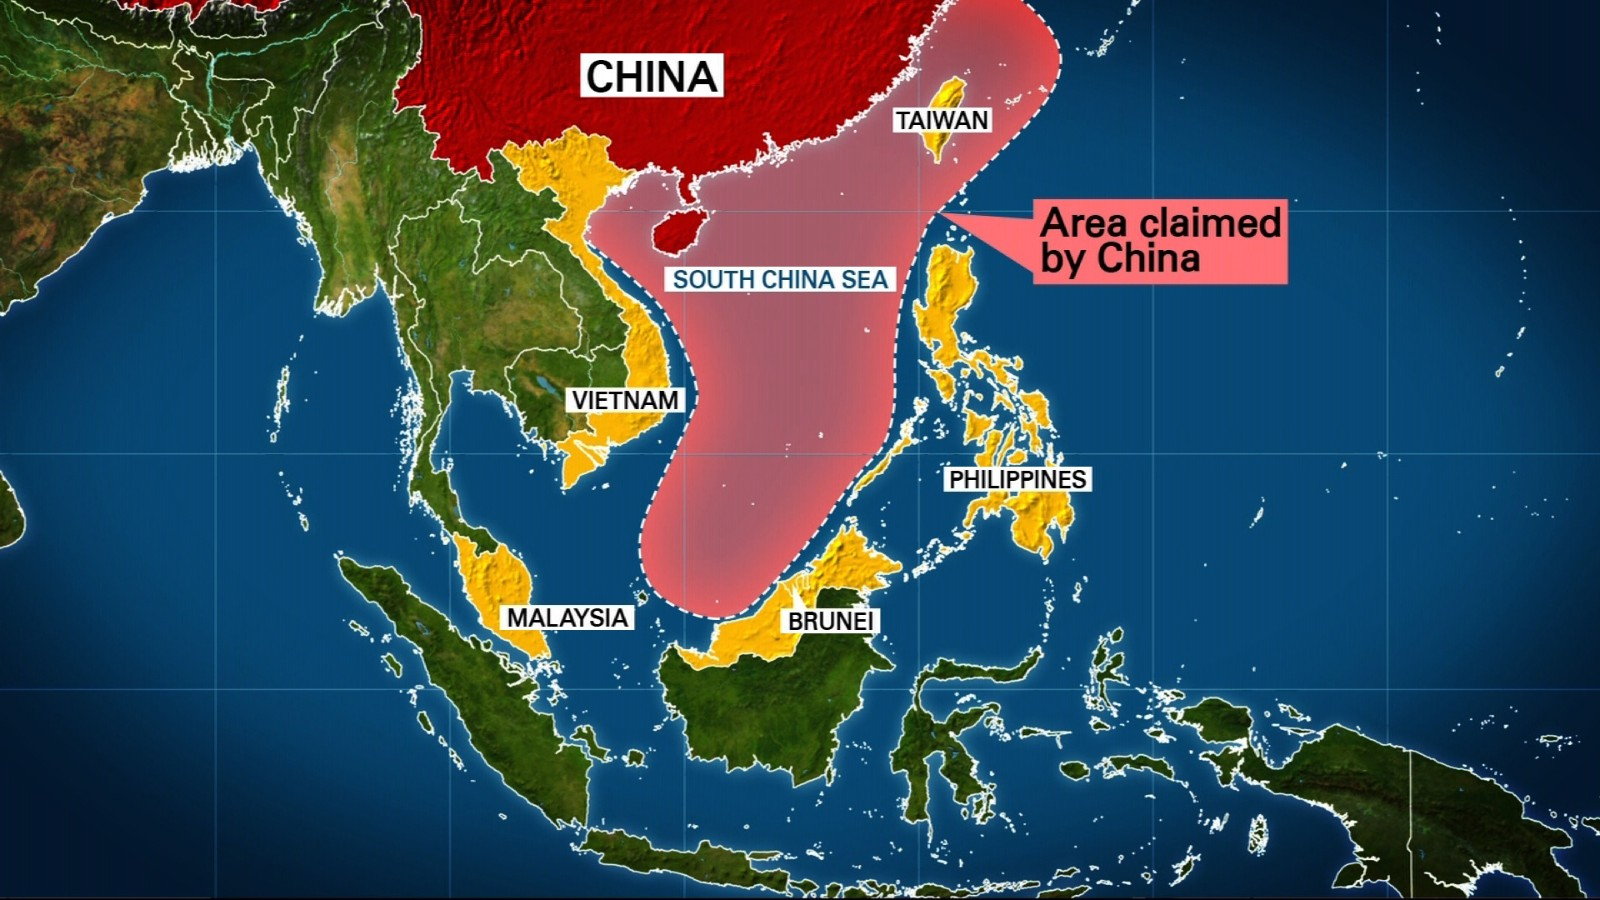 Resultado de imagen de CHINA AGAINST JAPAN TO CONTROL SOUTH CHINA SEA